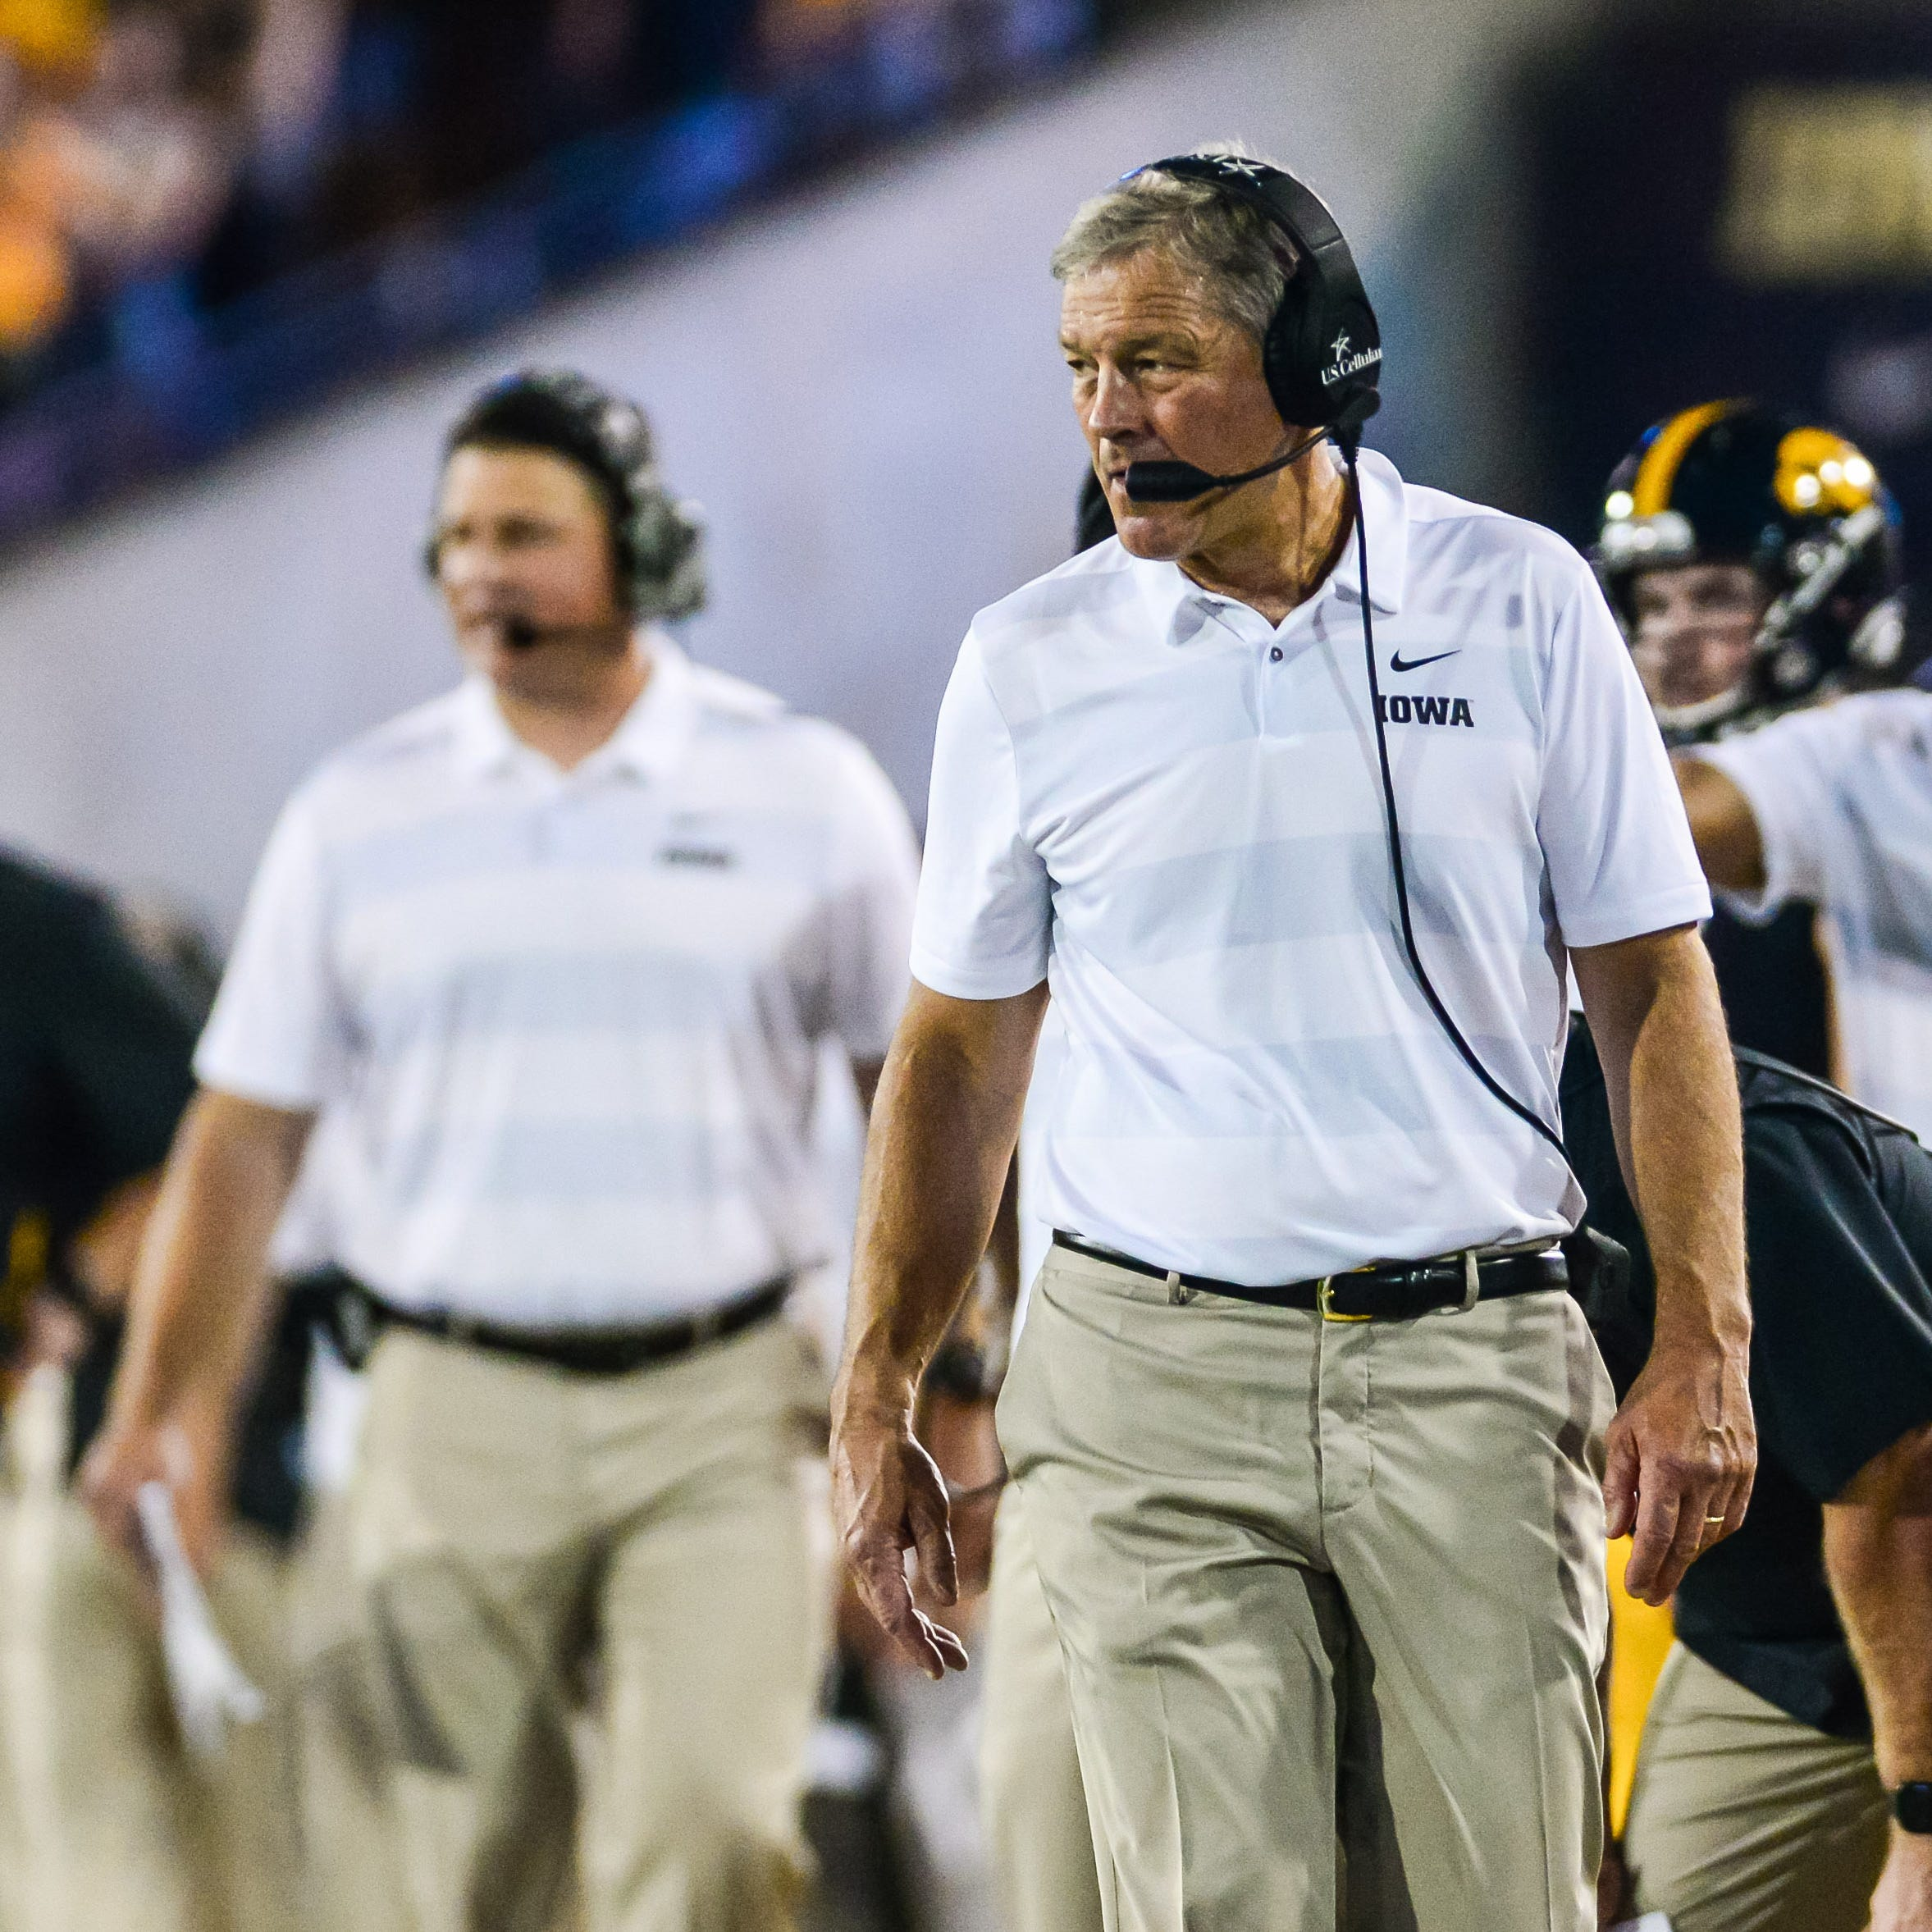 University of Iowa football coach Kirk Ferentz wins court ruling in neighborhood dispute